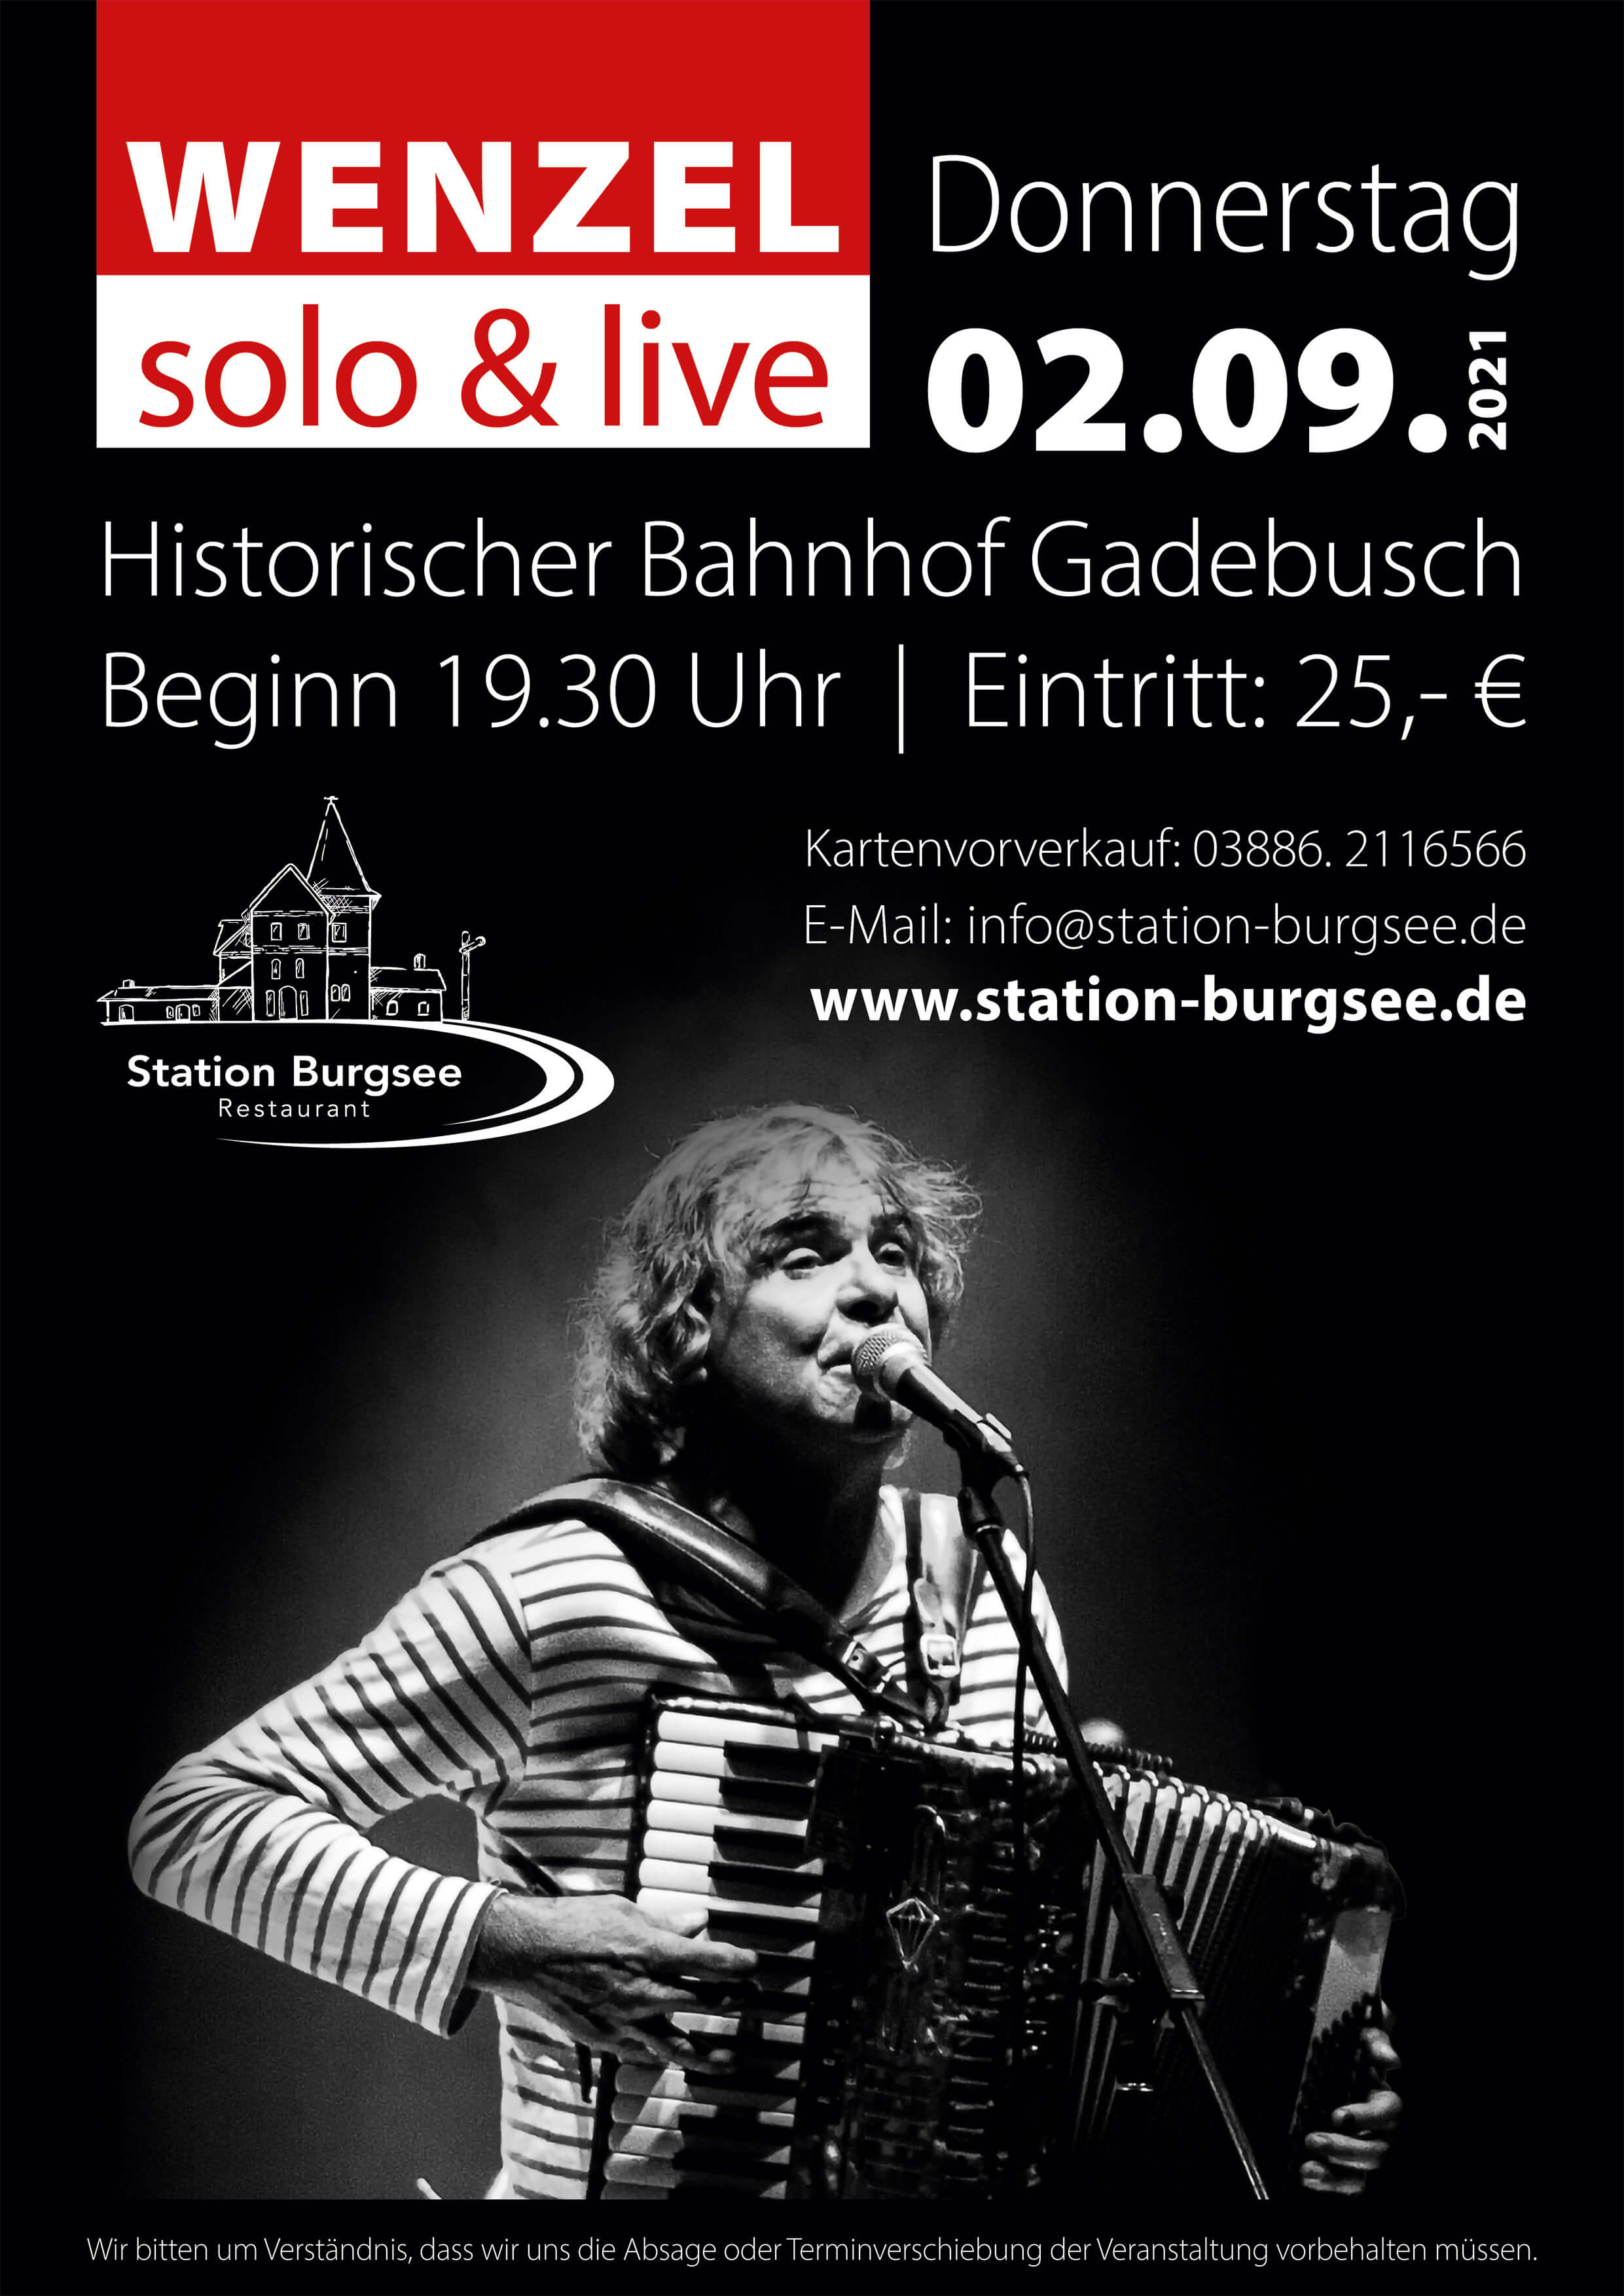 WENZEL solo & live 02.09.2021